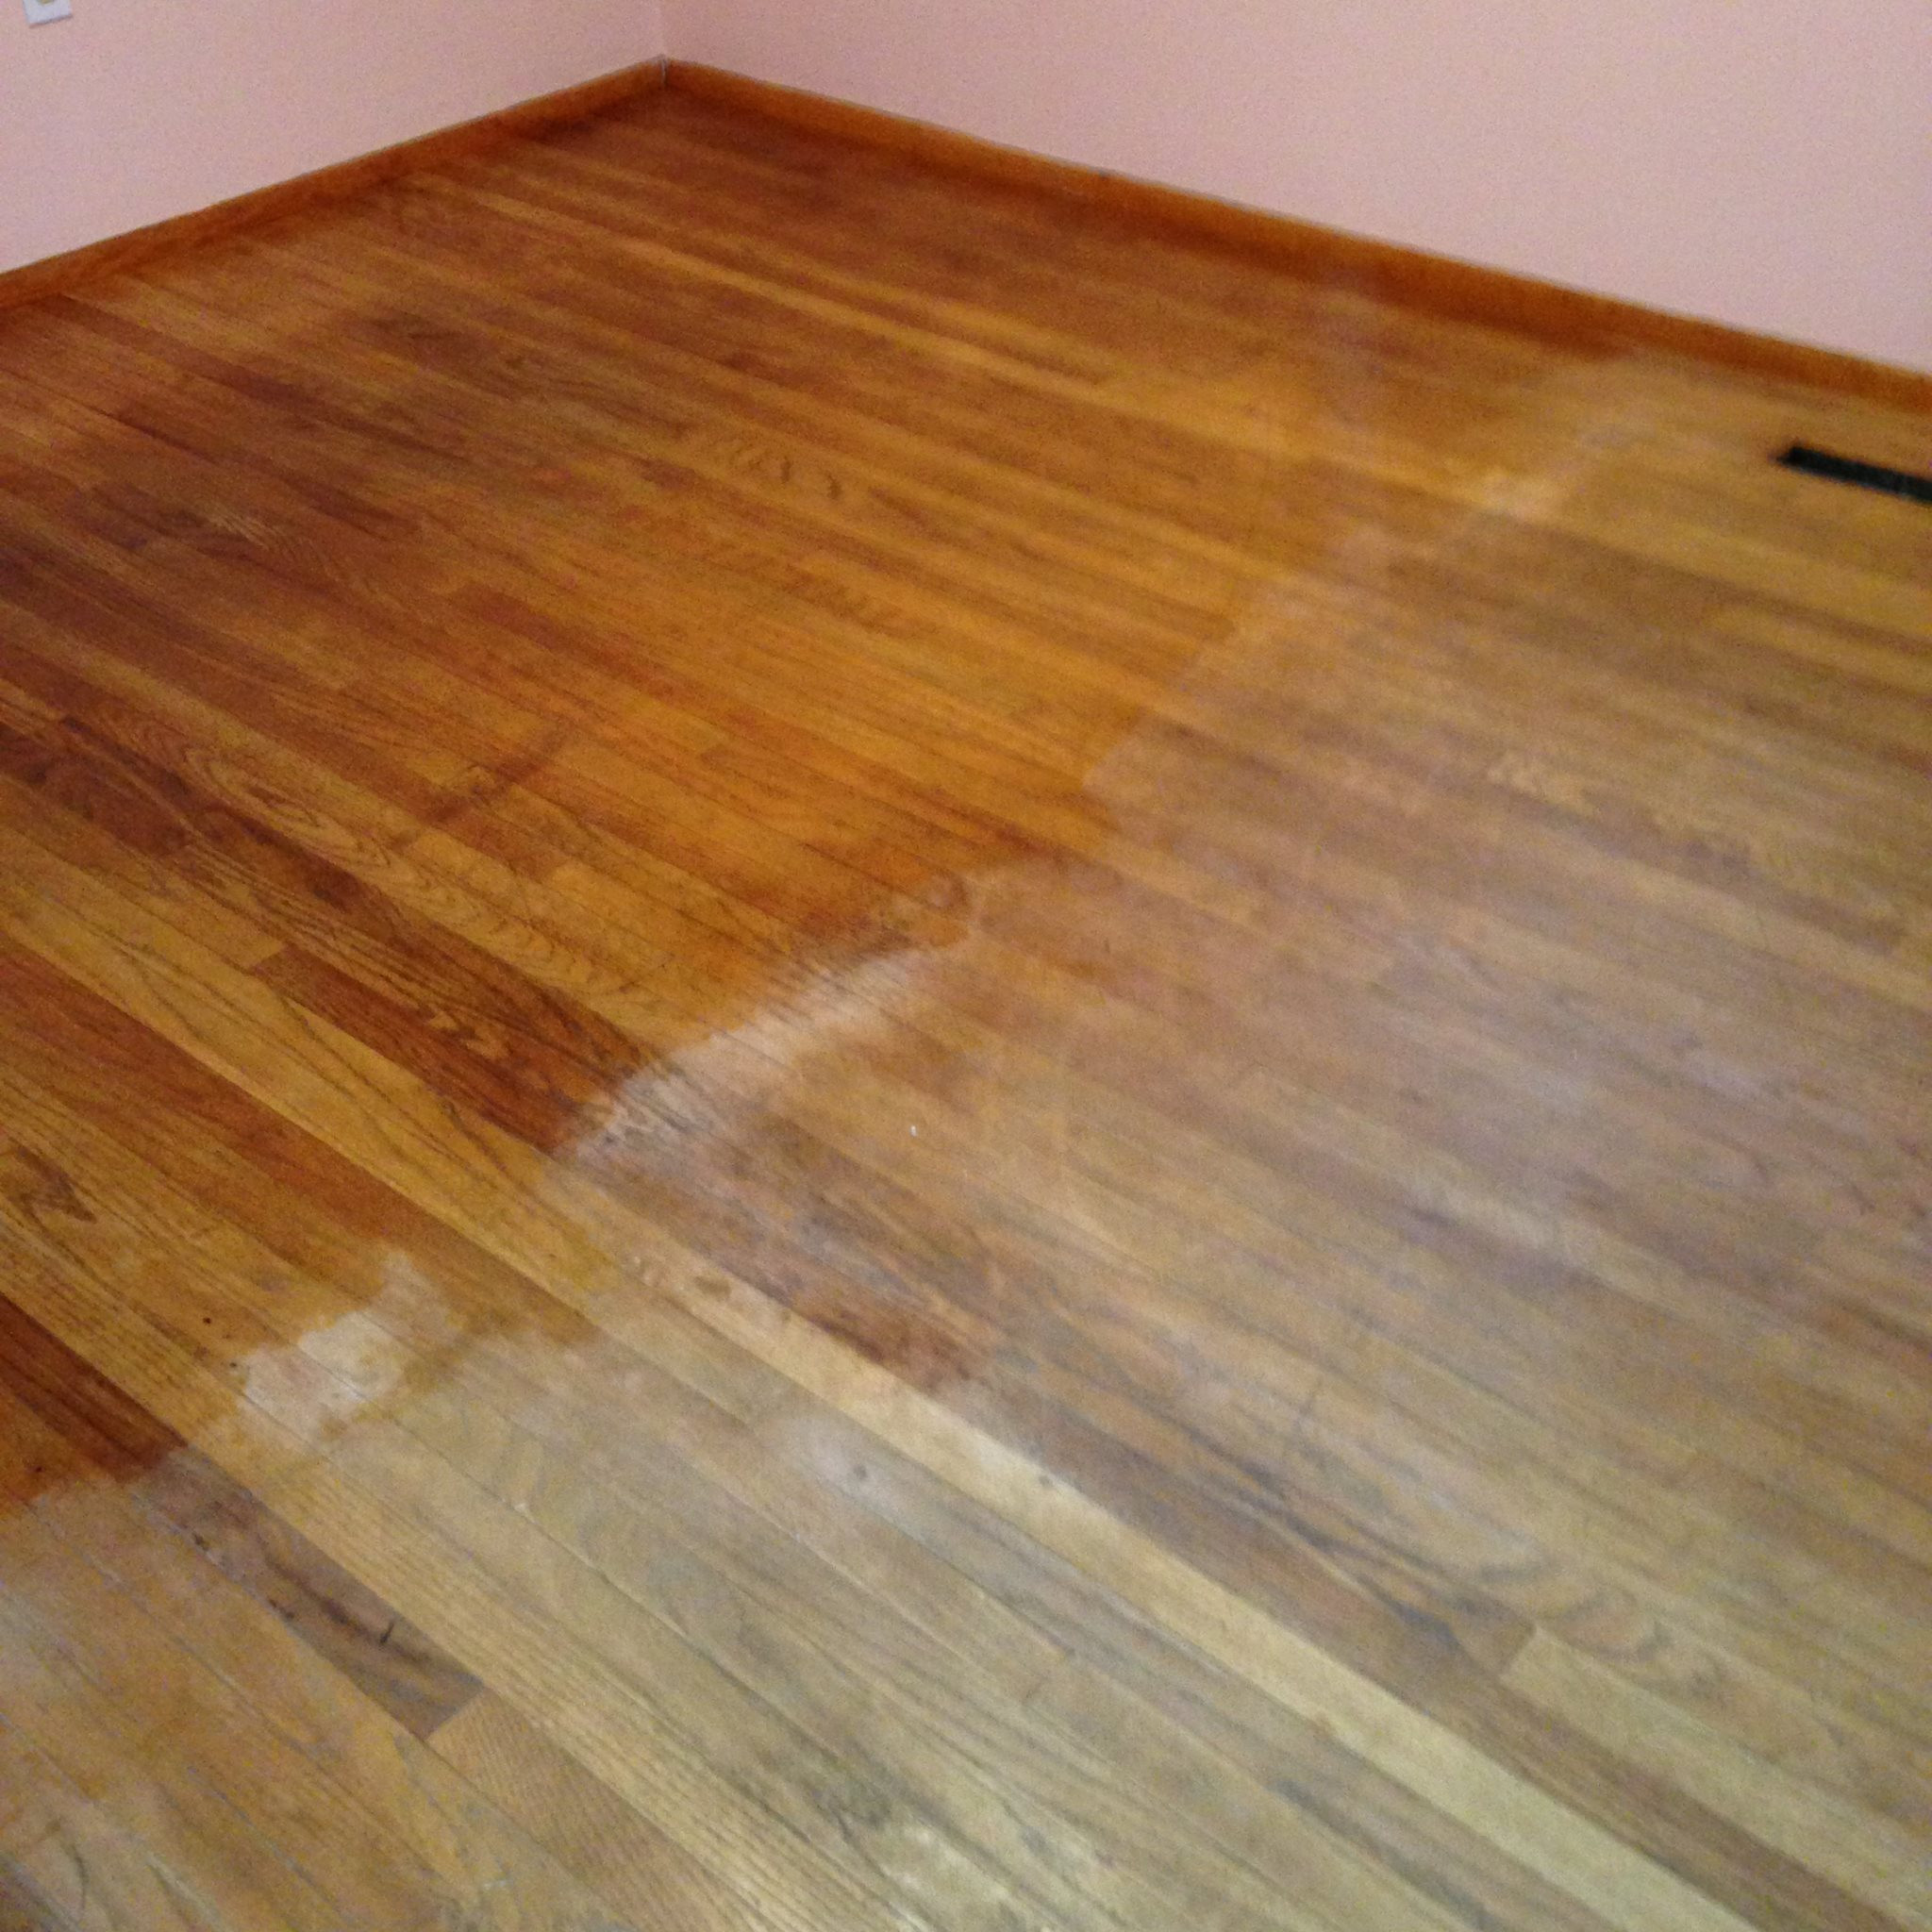 How to Make Hardwood Floors Not Slippery Of 15 Wood Floor Hacks Every Homeowner Needs to Know Pertaining to Wood Floor Hacks 15